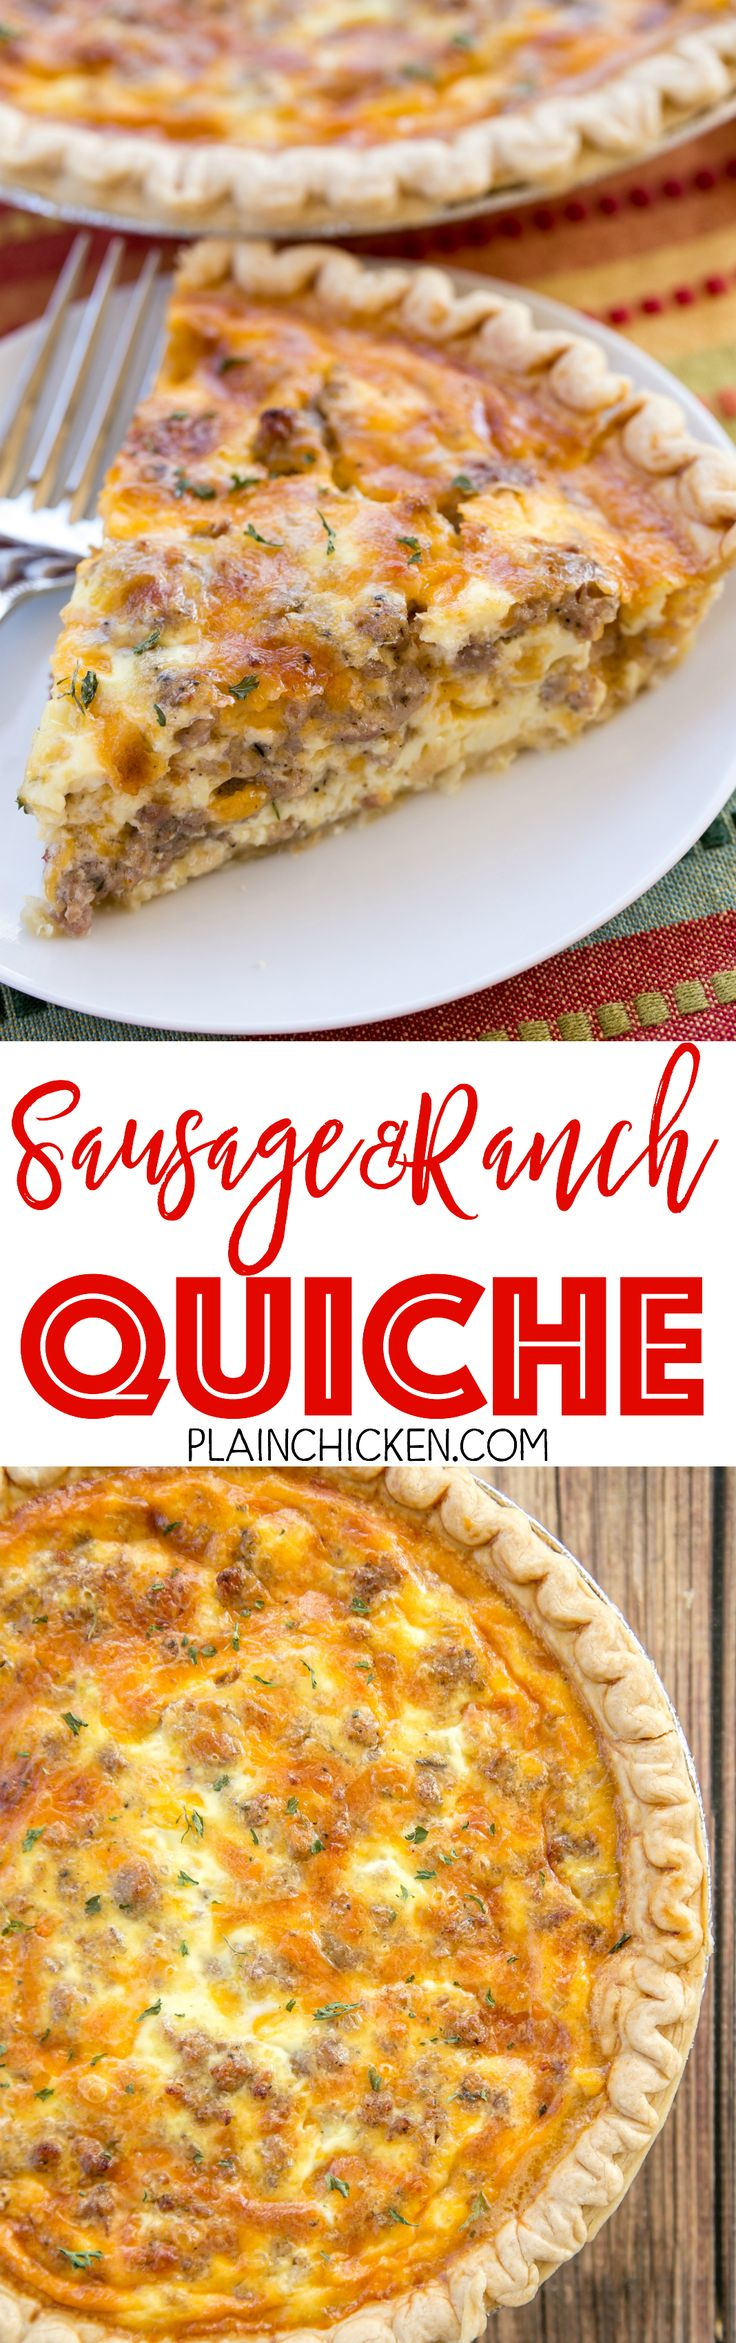 Sausage and Ranch Quiche - so quick and easy. Everyone LOVED this recipe!! Can make ahead and freeze for later. Pie crust, sausage, ranch dressing, cheddar cheese, heavy cream, eggs, and pepper. Ready